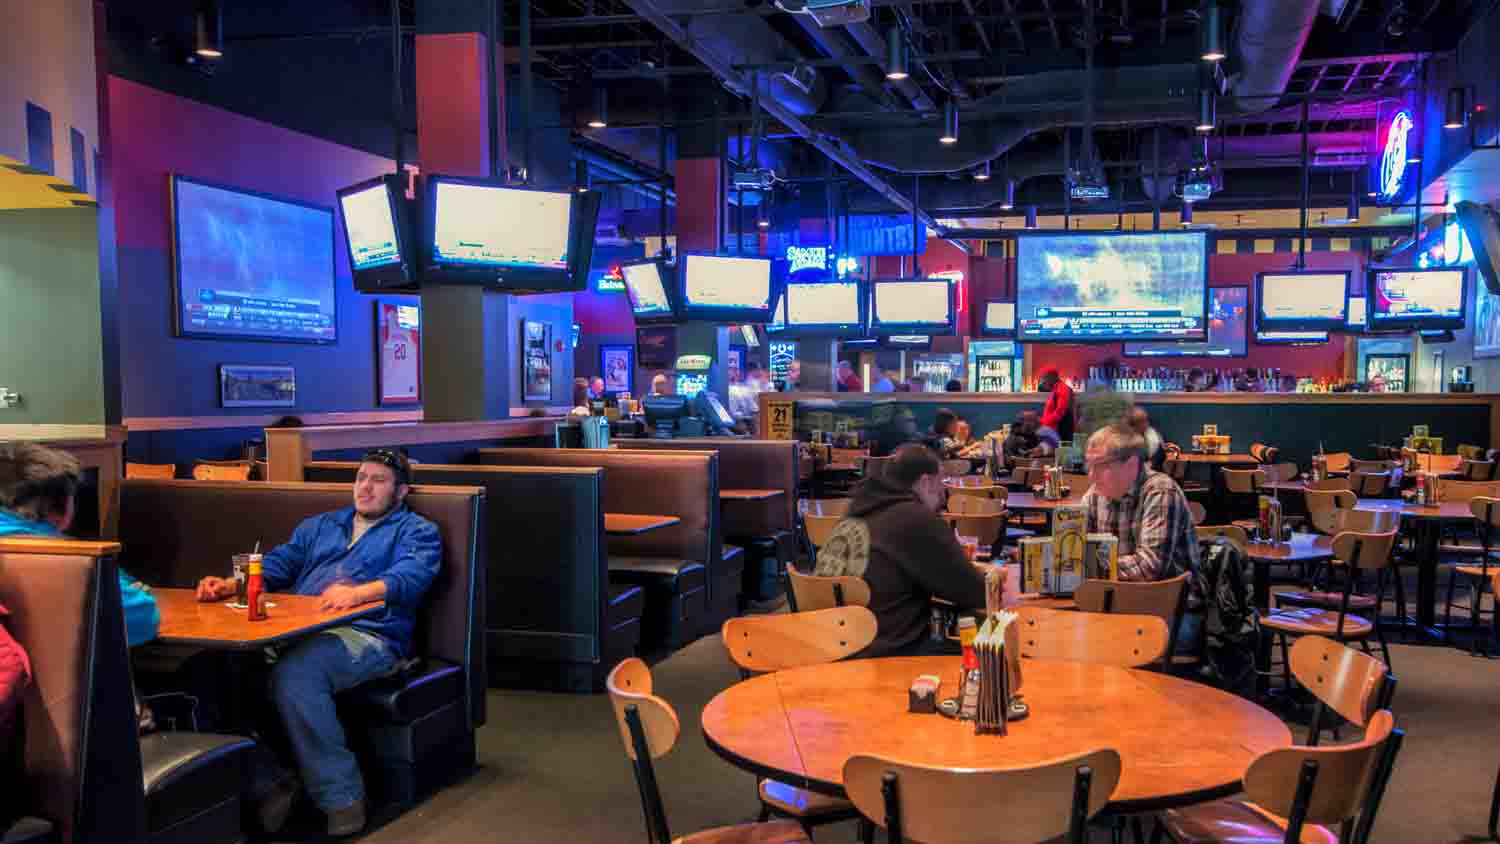 Buffalo Wild Wings Grill & Bar 1